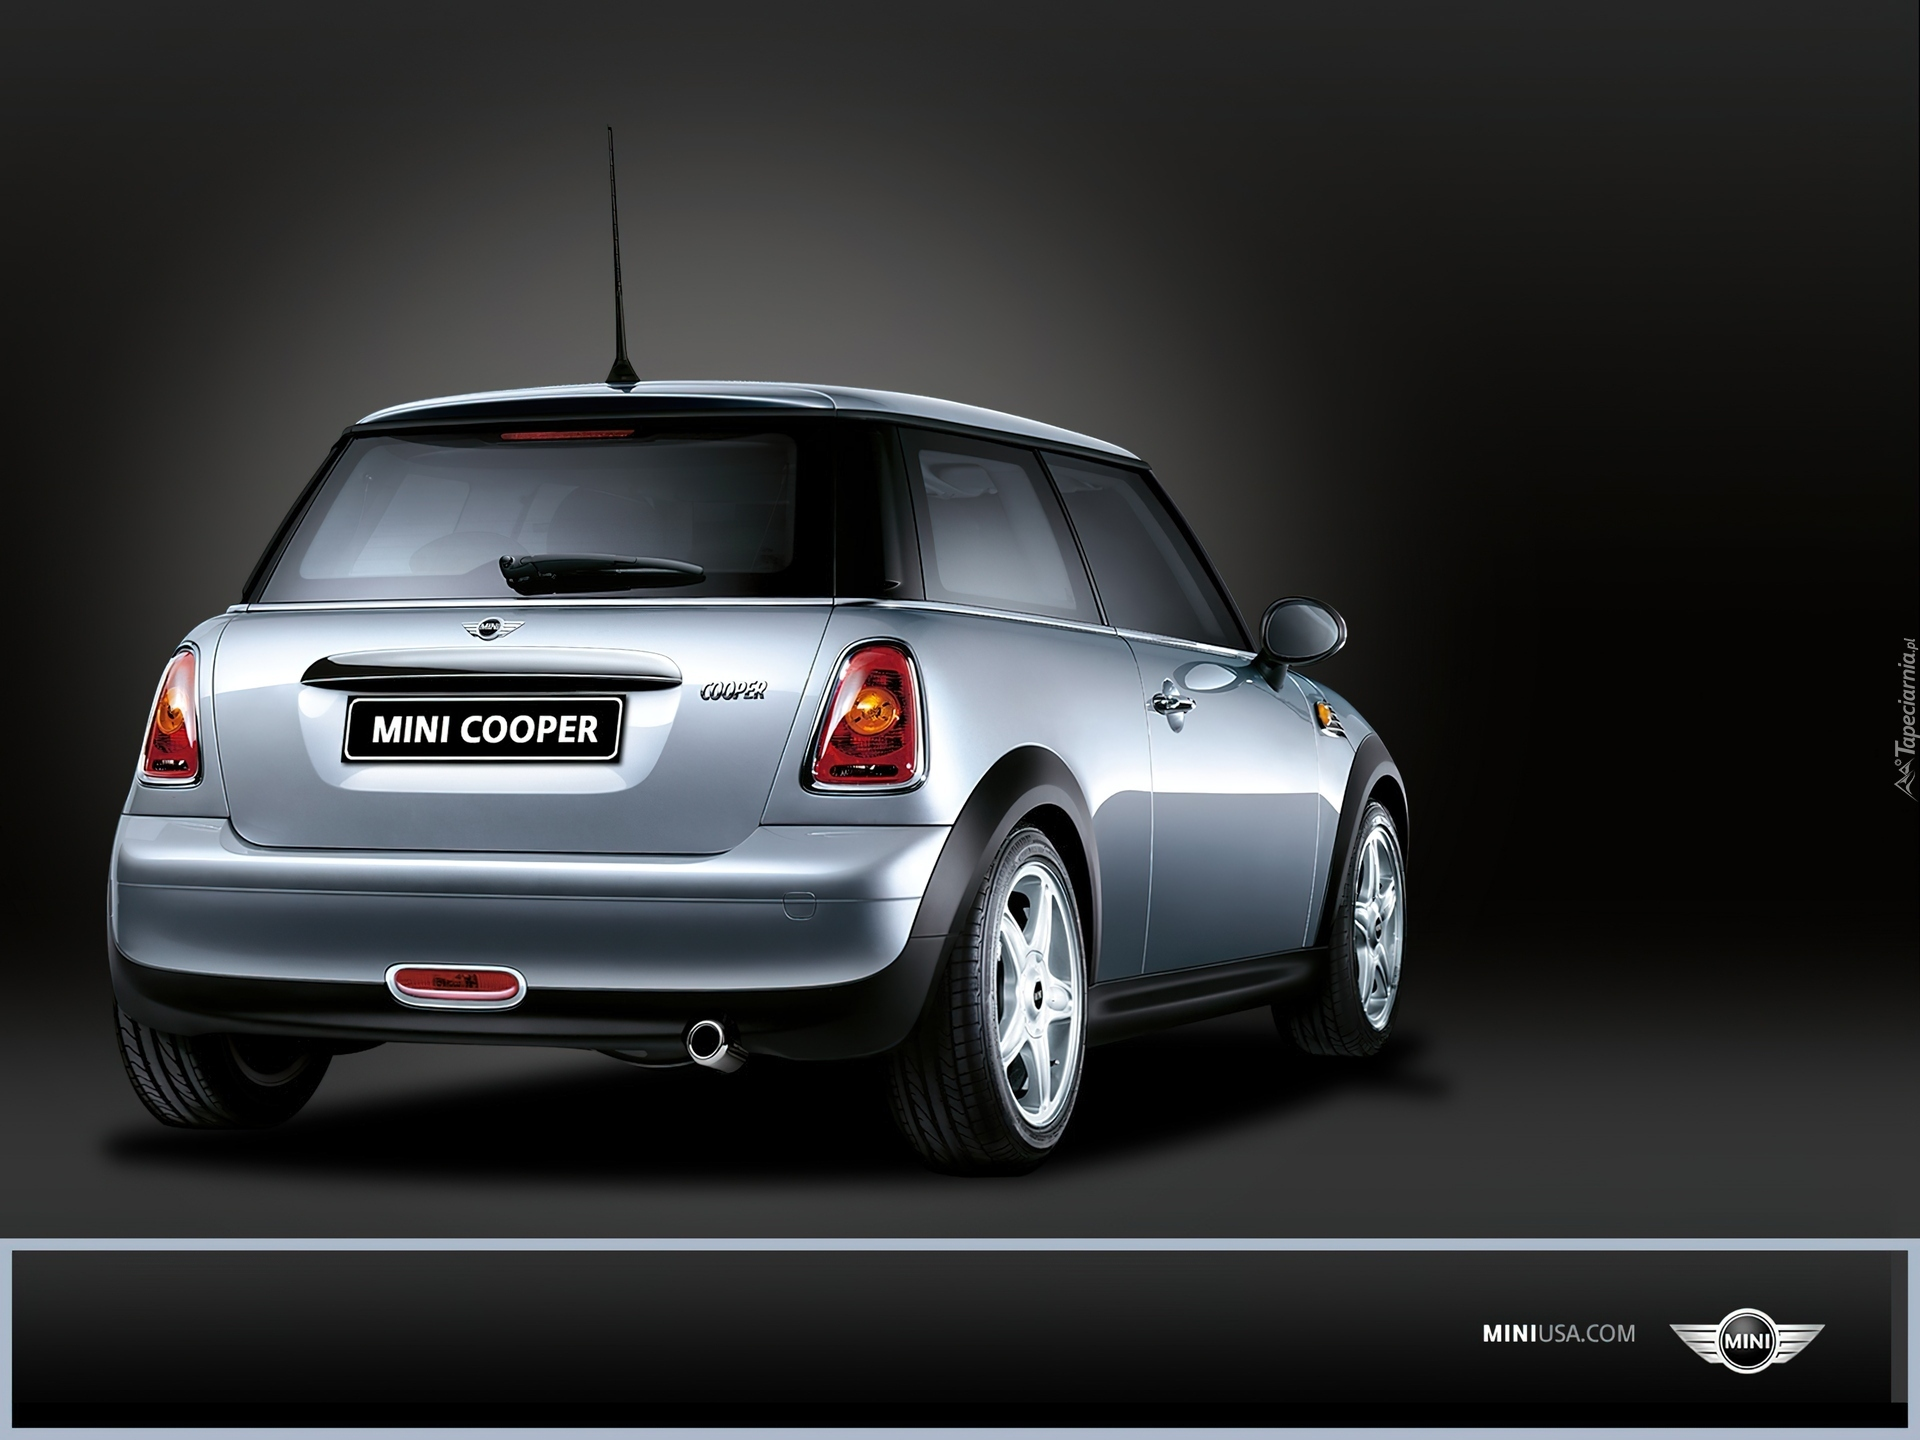 Mini Cooper, Dealer, USA